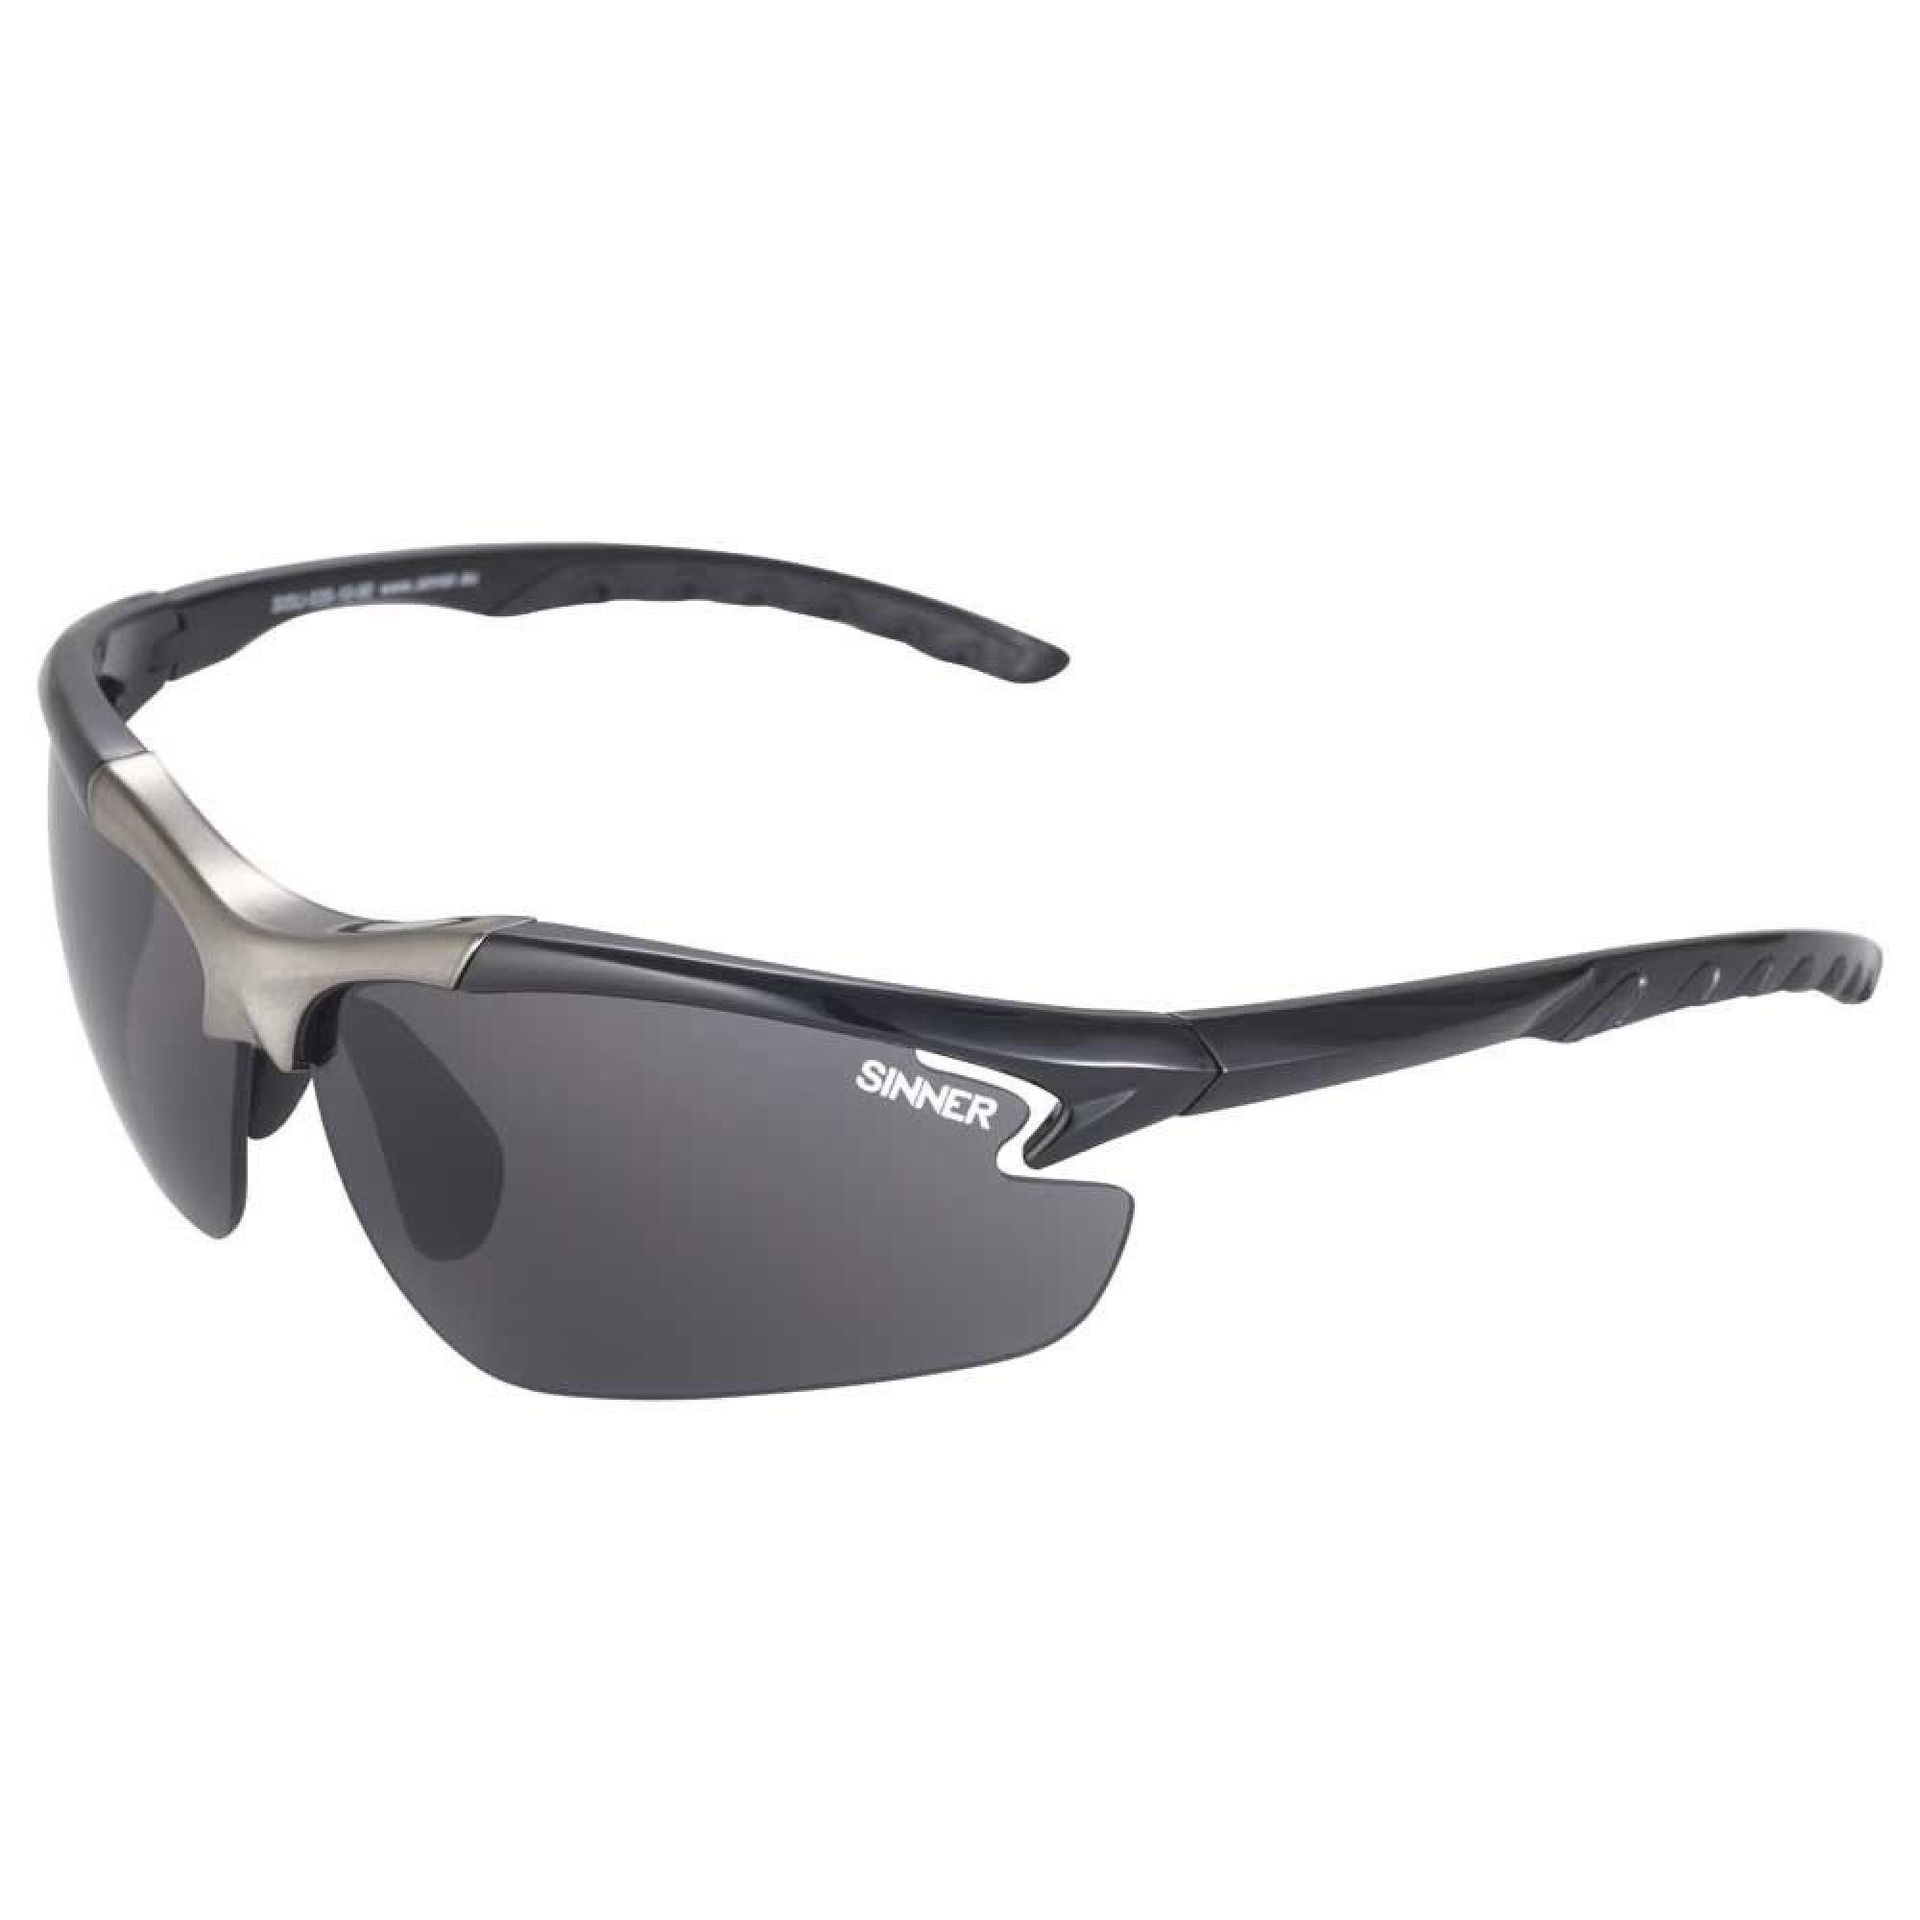 OKULARY SINNER FIREBUG SHINY BLACK 1